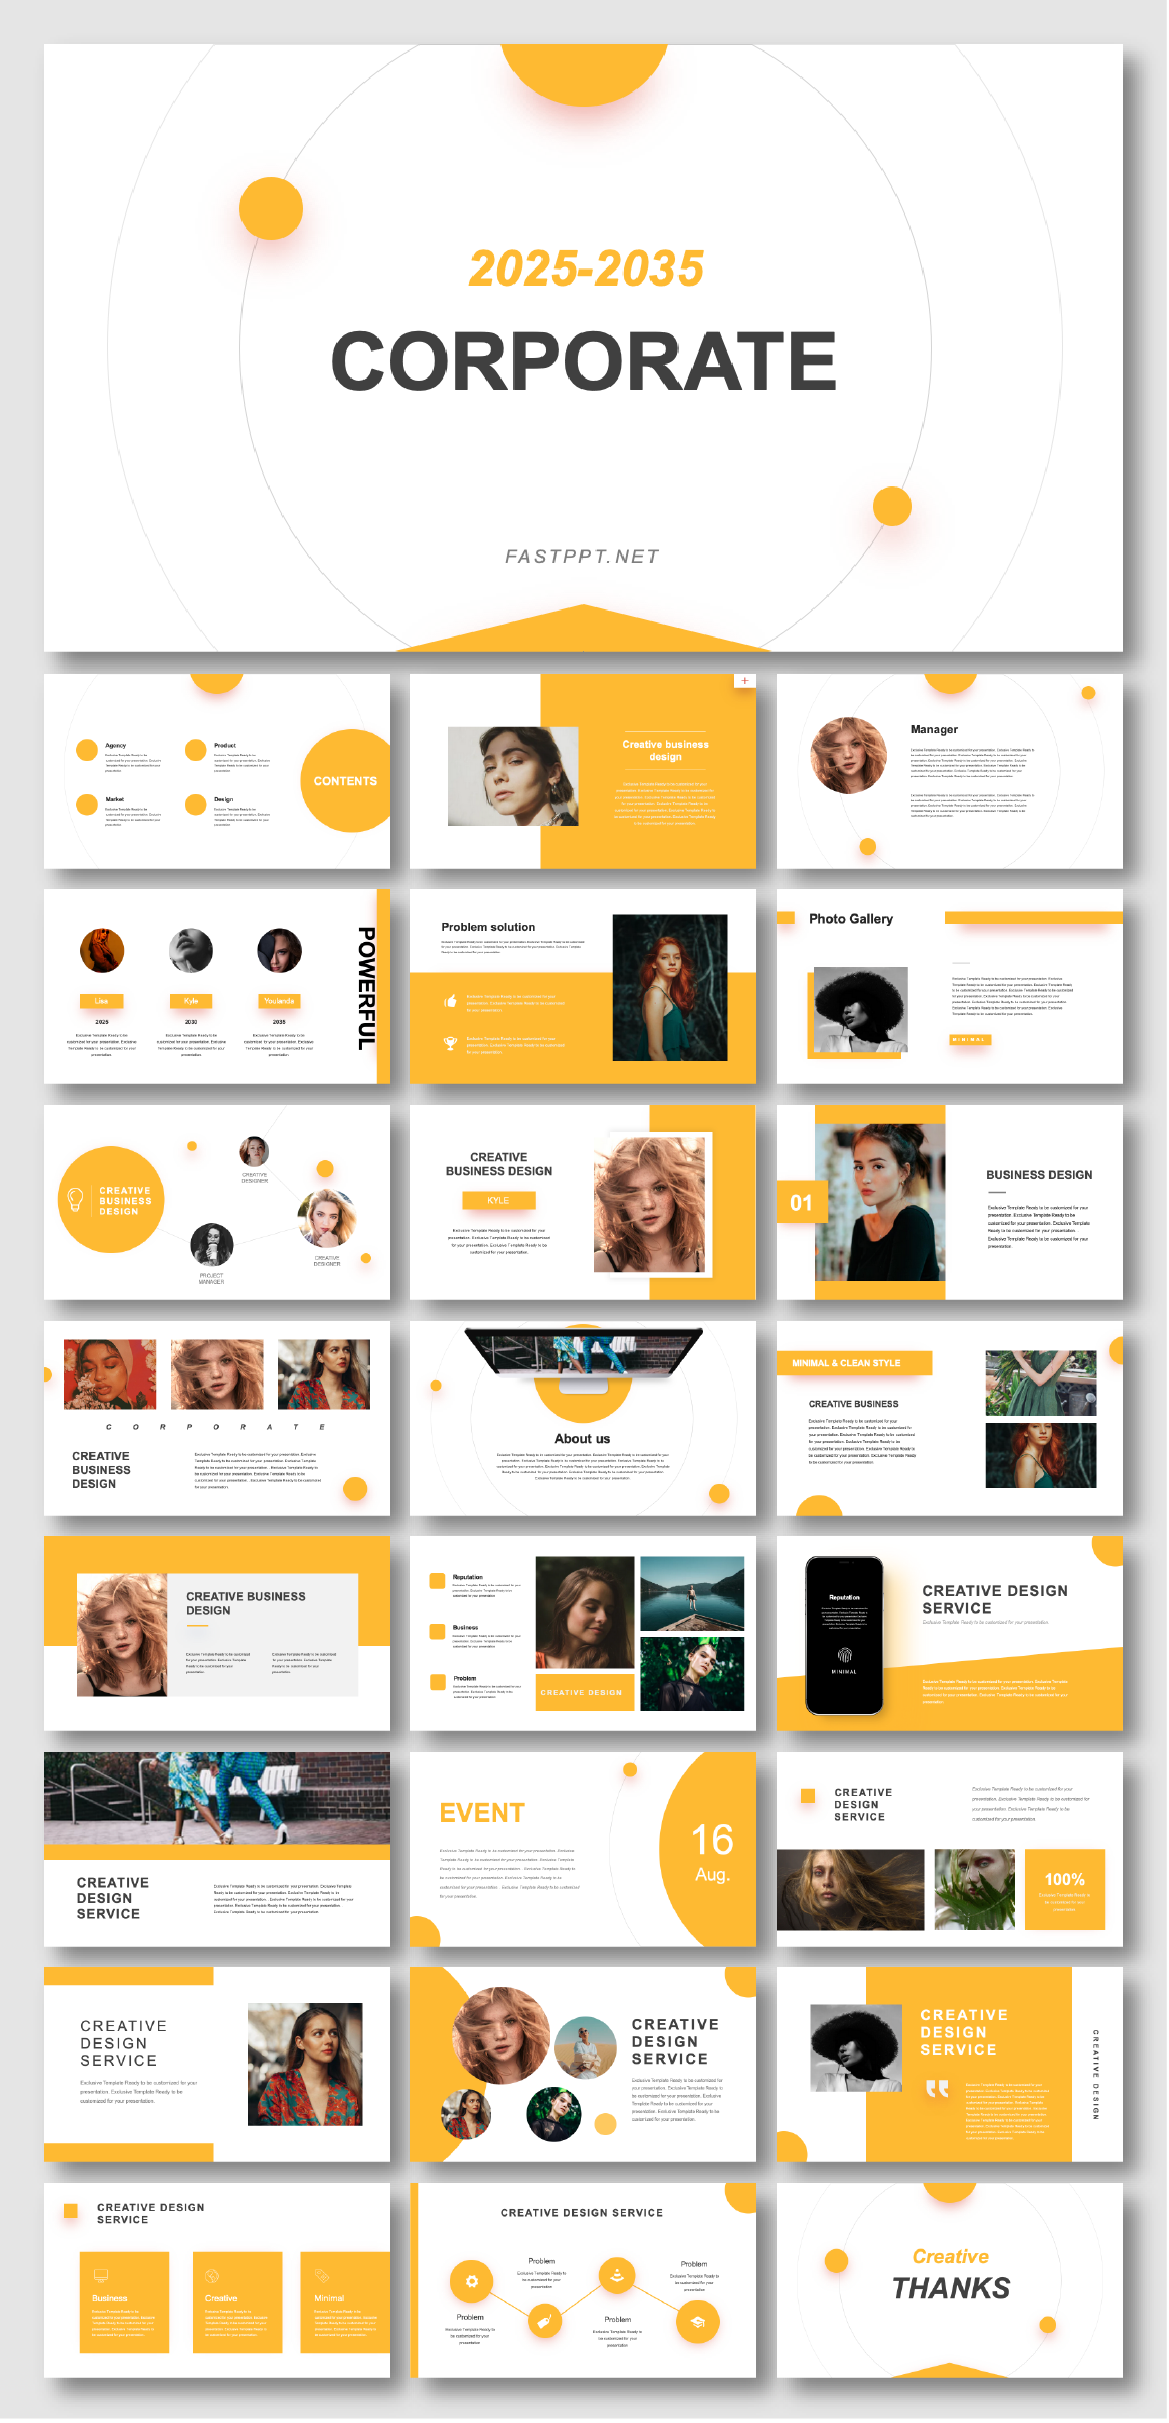 Brand & Marketing Design Presentation Template – Original and high quality PowerPoint Templates download